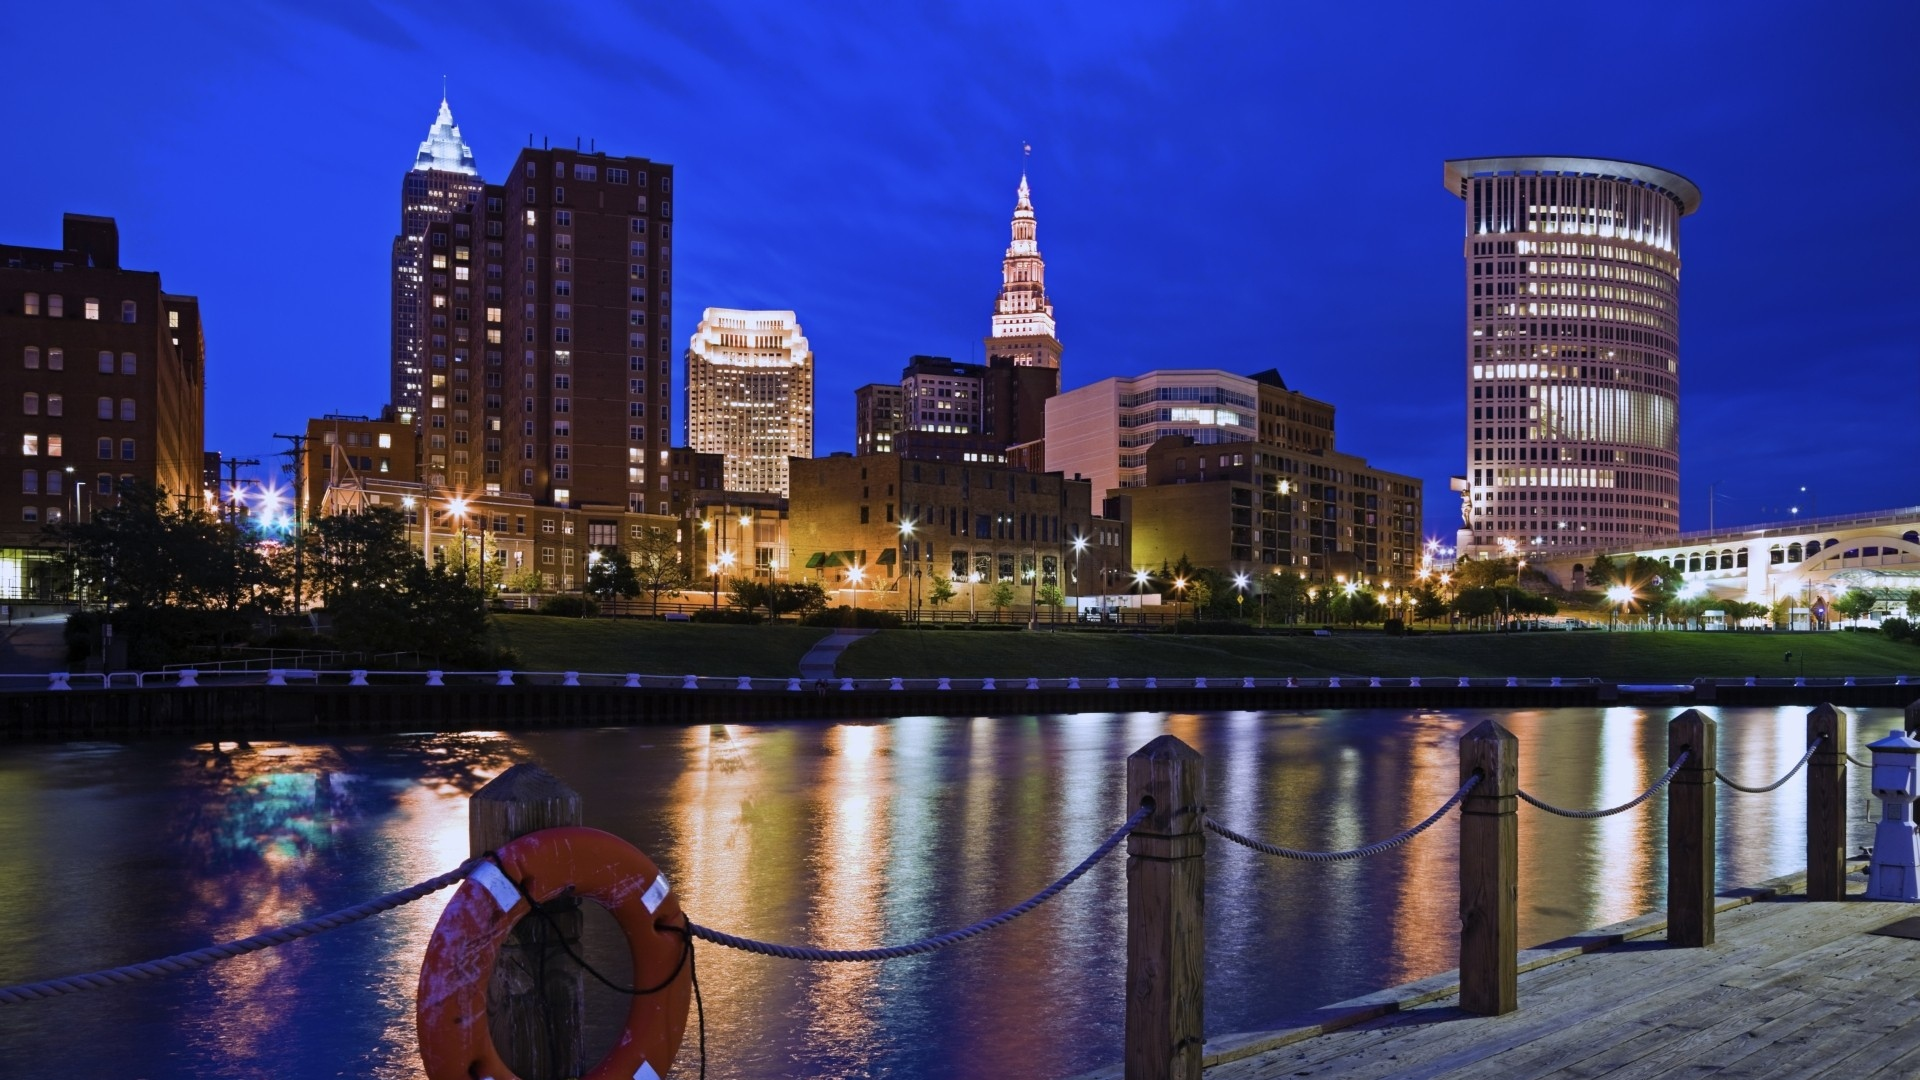 Download Wallpaper 1920x1080 Cleveland, Embankment